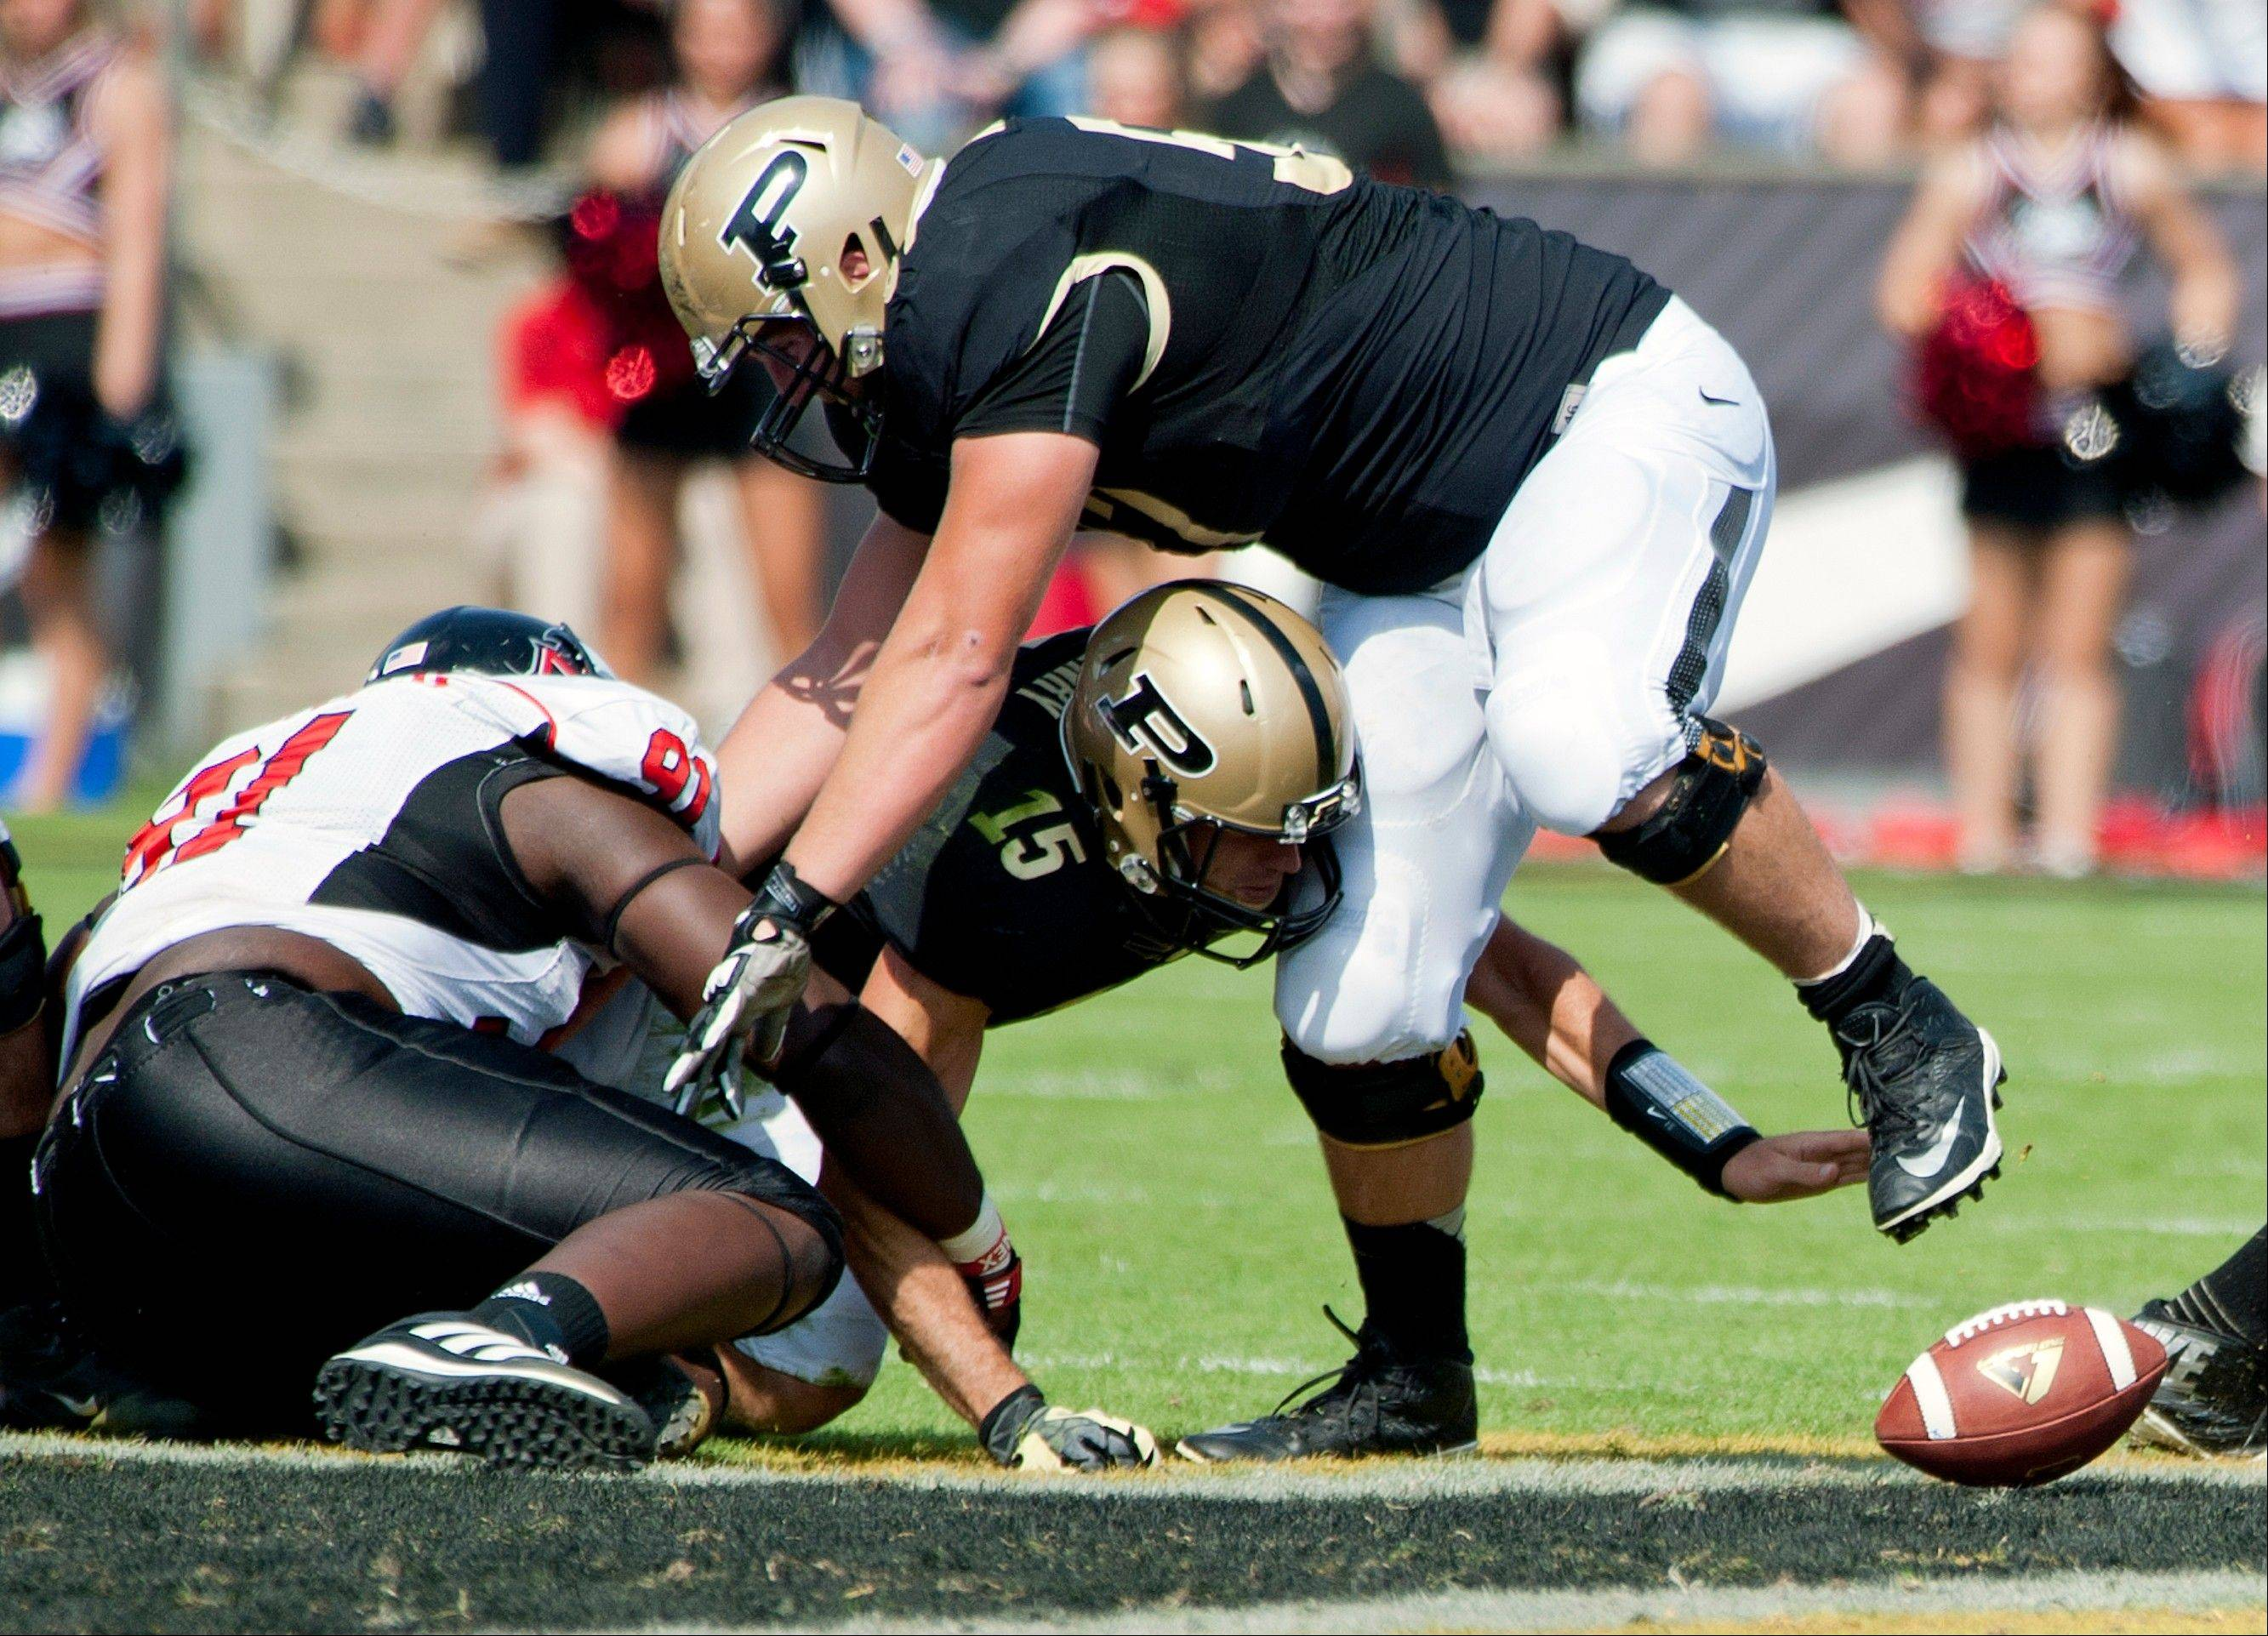 Purdue quarterback Rob Henry loses the football against Northern Illinois during Saturday�s game at Ross-Ade Stadium in West Lafayette, Ind.